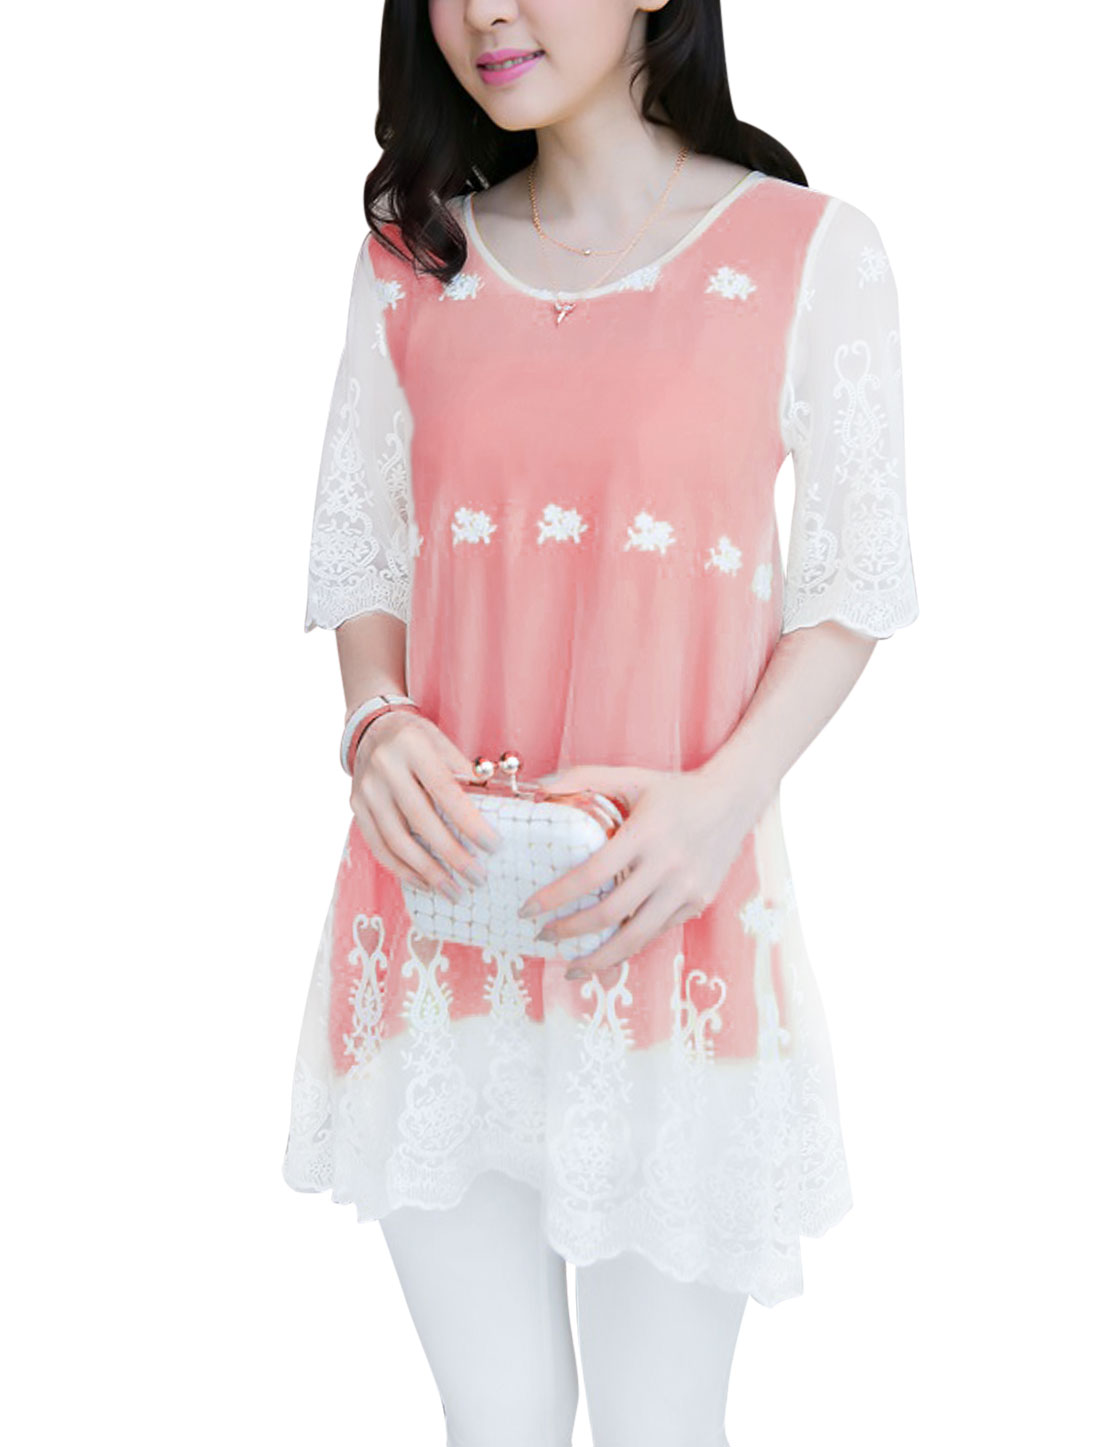 Lady Half Sleeve Mesh Overlay Flower Embroidery Tunic Top Pink S